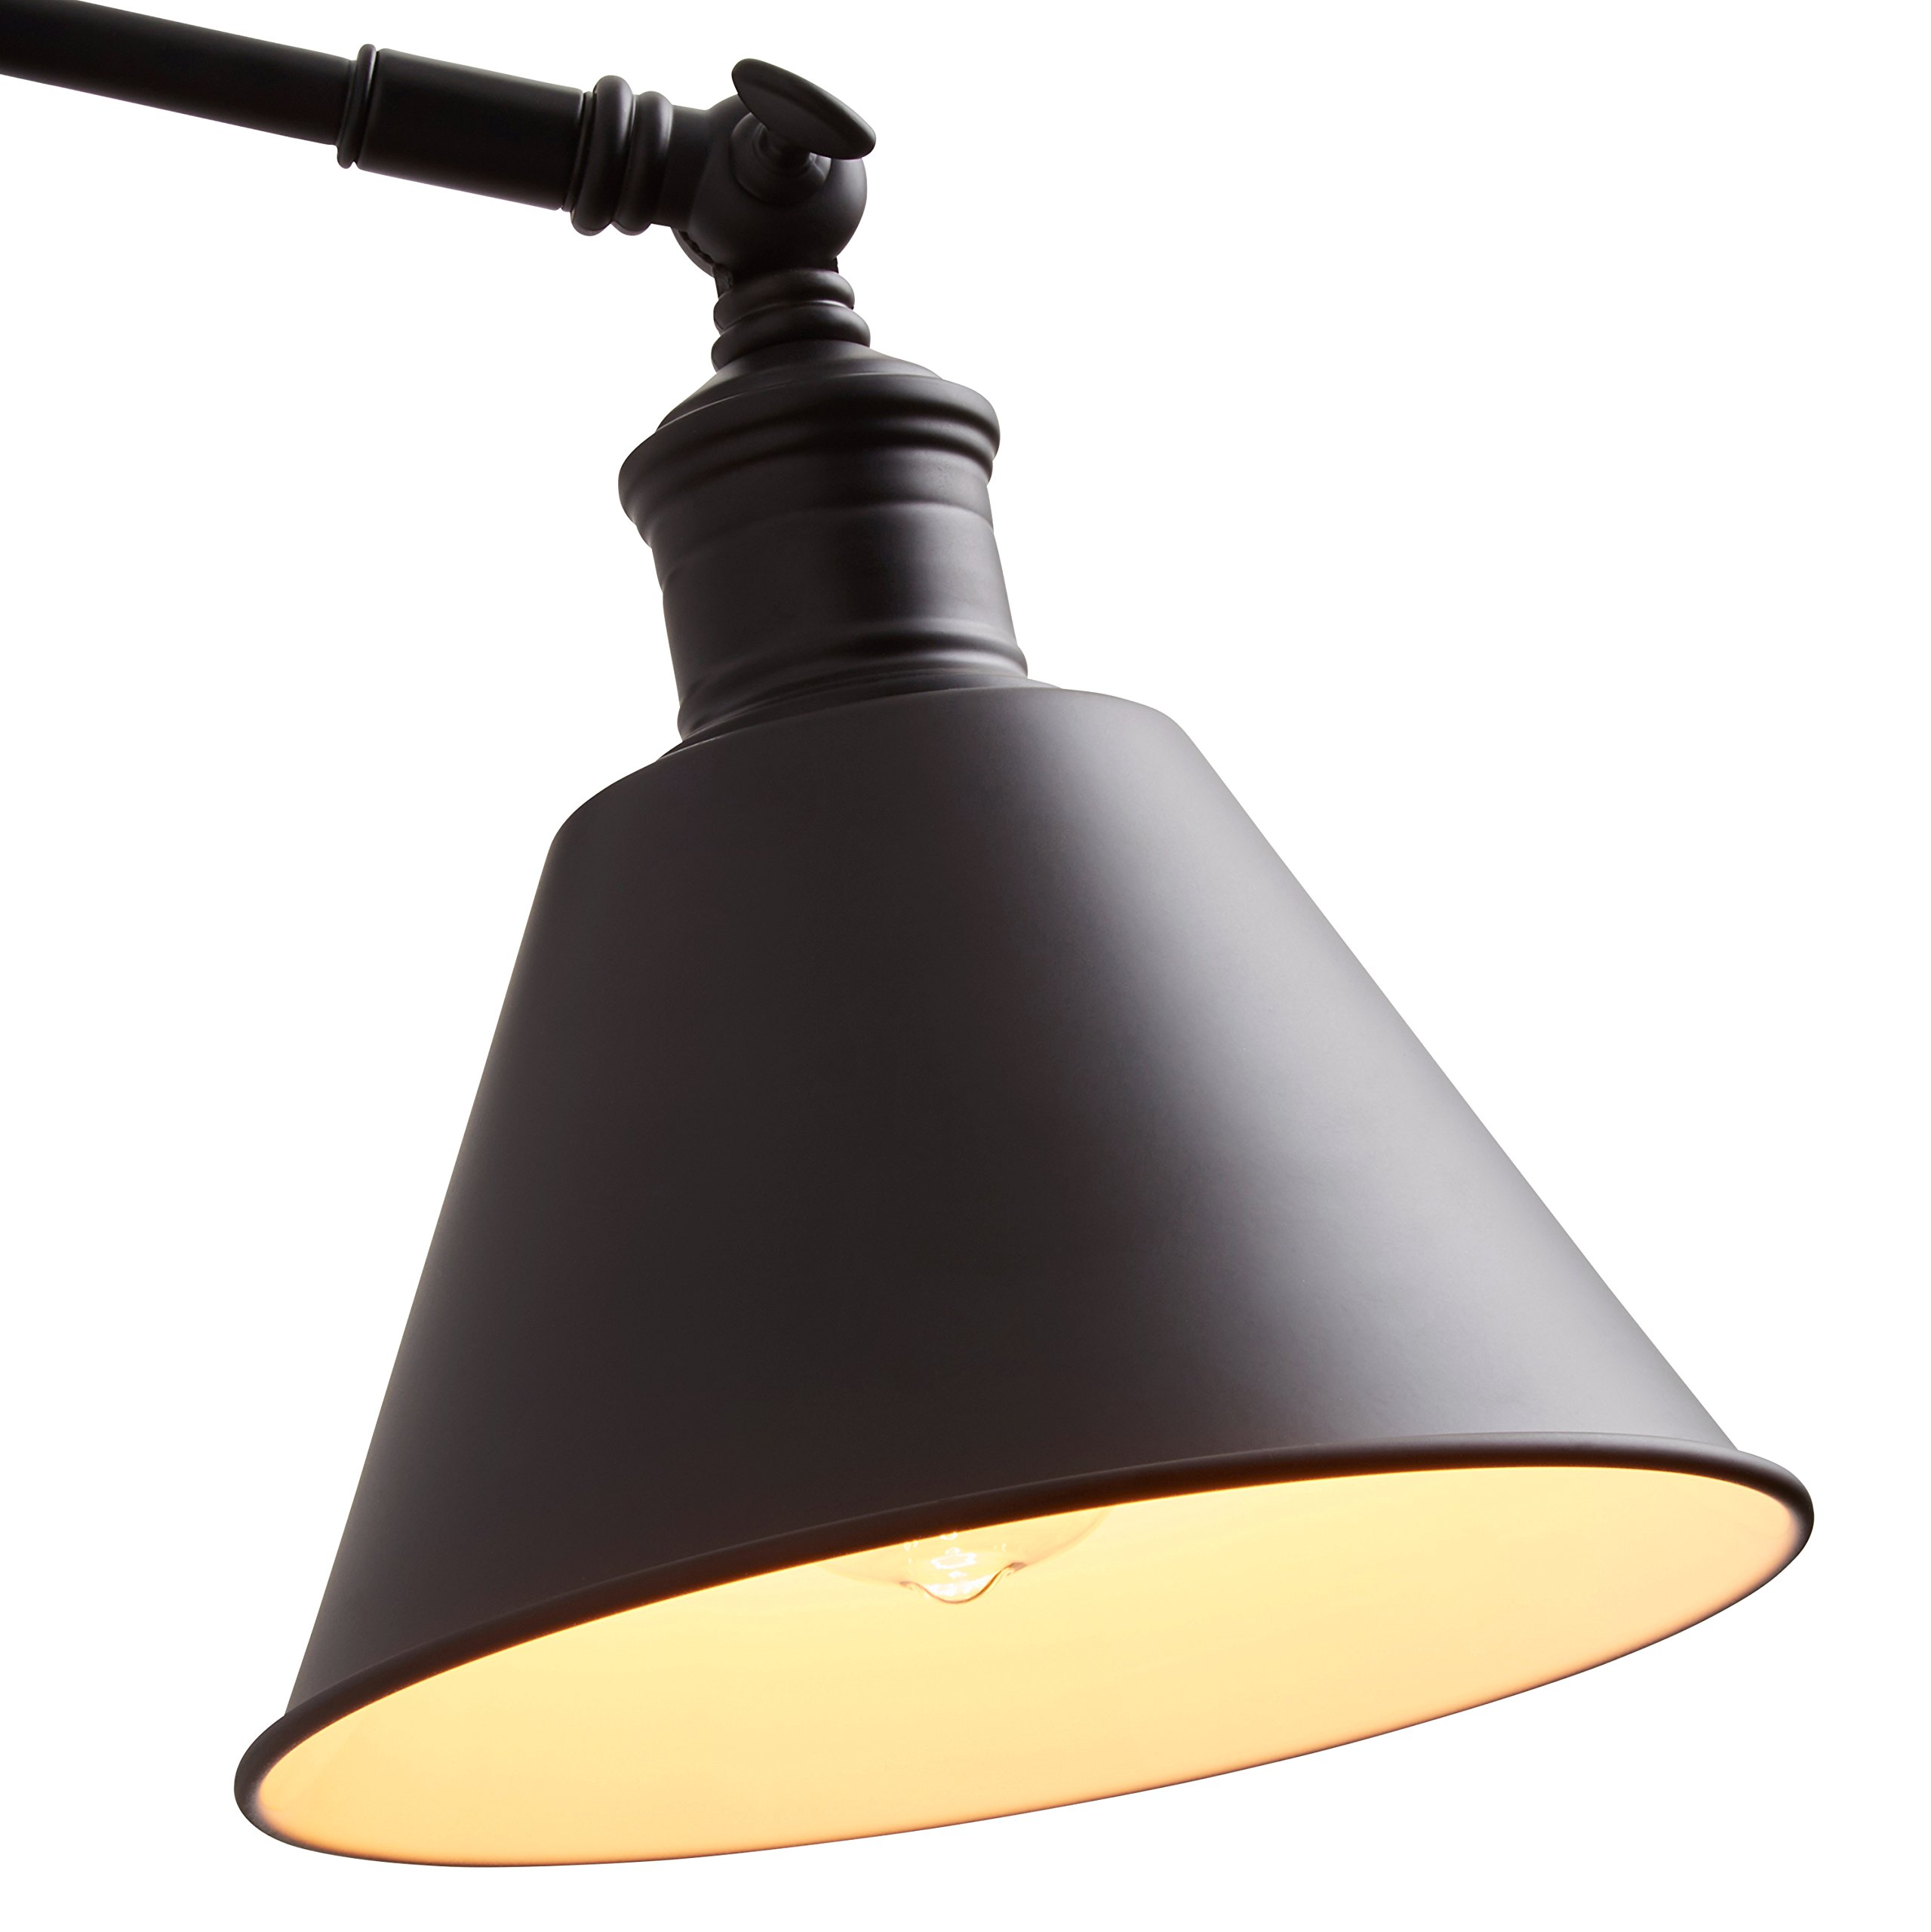 Stone & Beam Modern Wall Sconce, 12.5''H, With Bulb, Matte Black by Stone & Beam (Image #7)